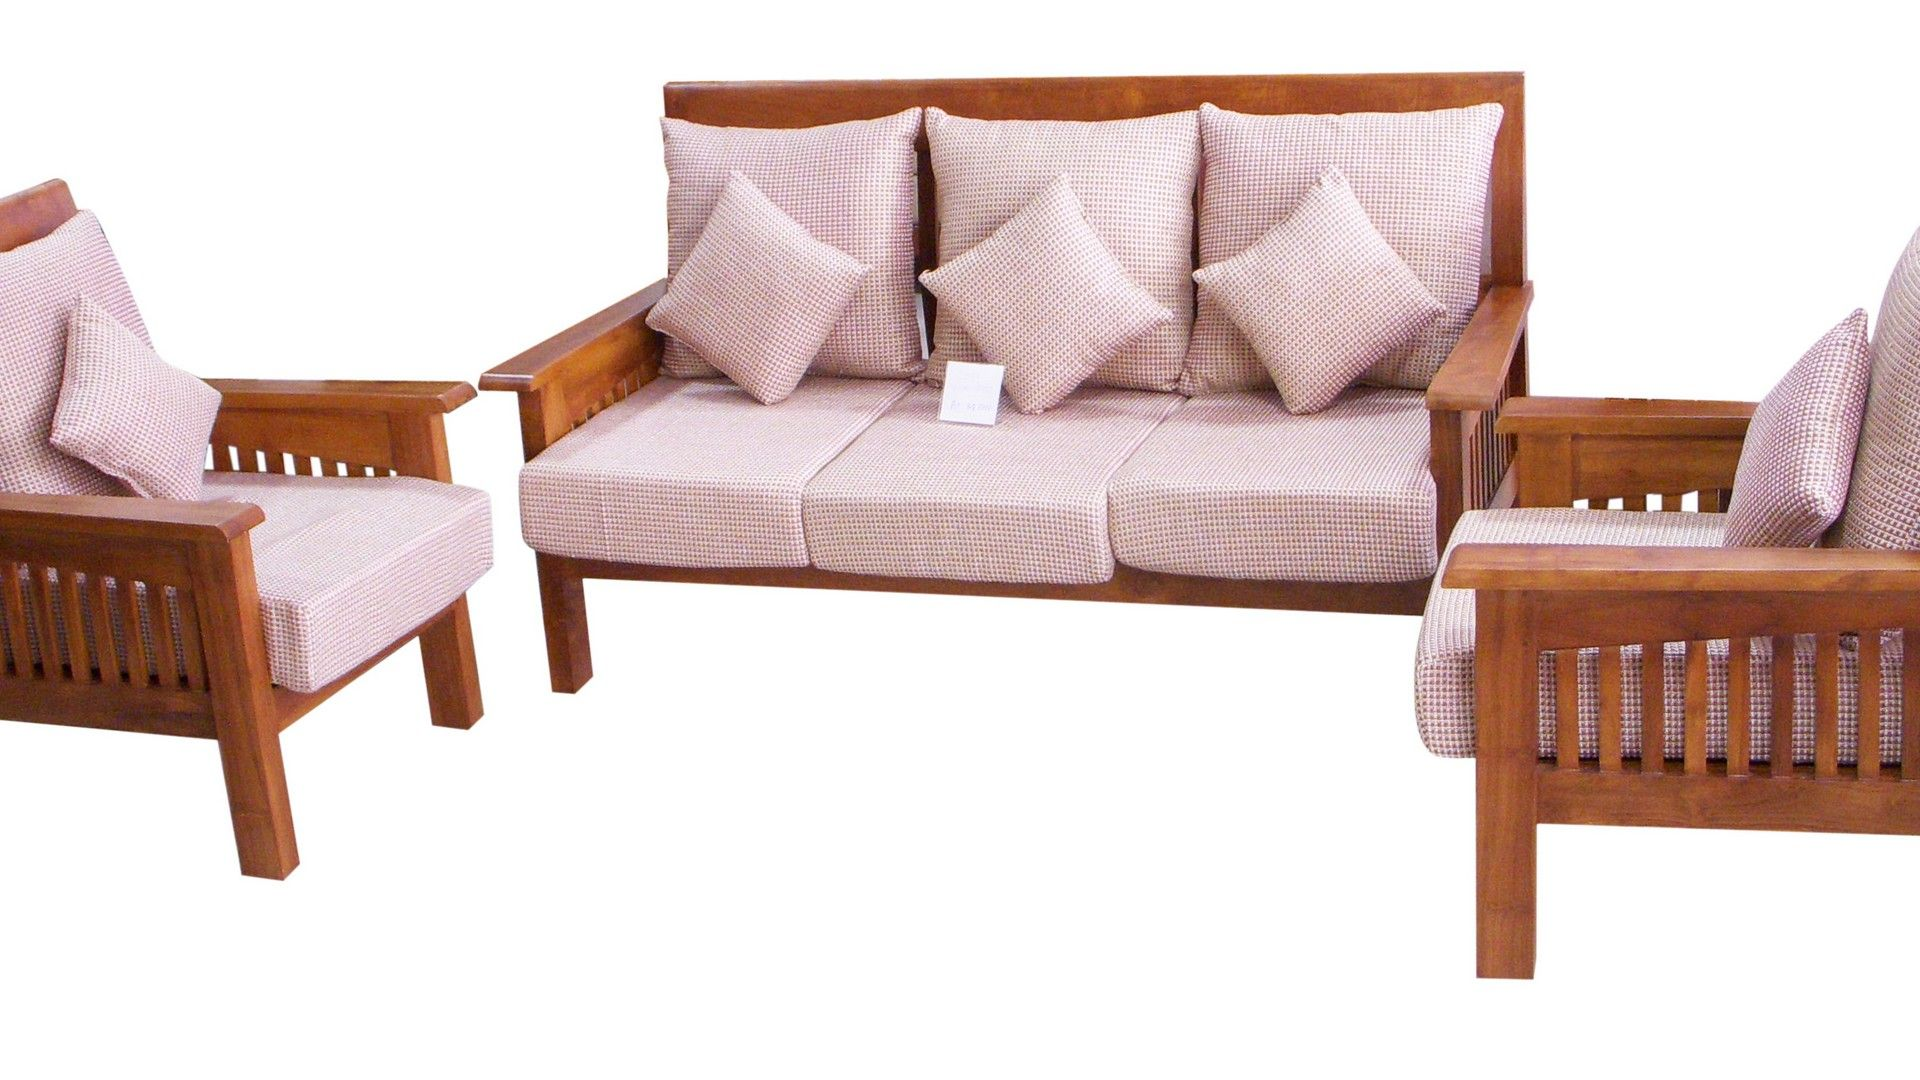 Charming Wooden Sofa Set With White Modern Cushion Seats In